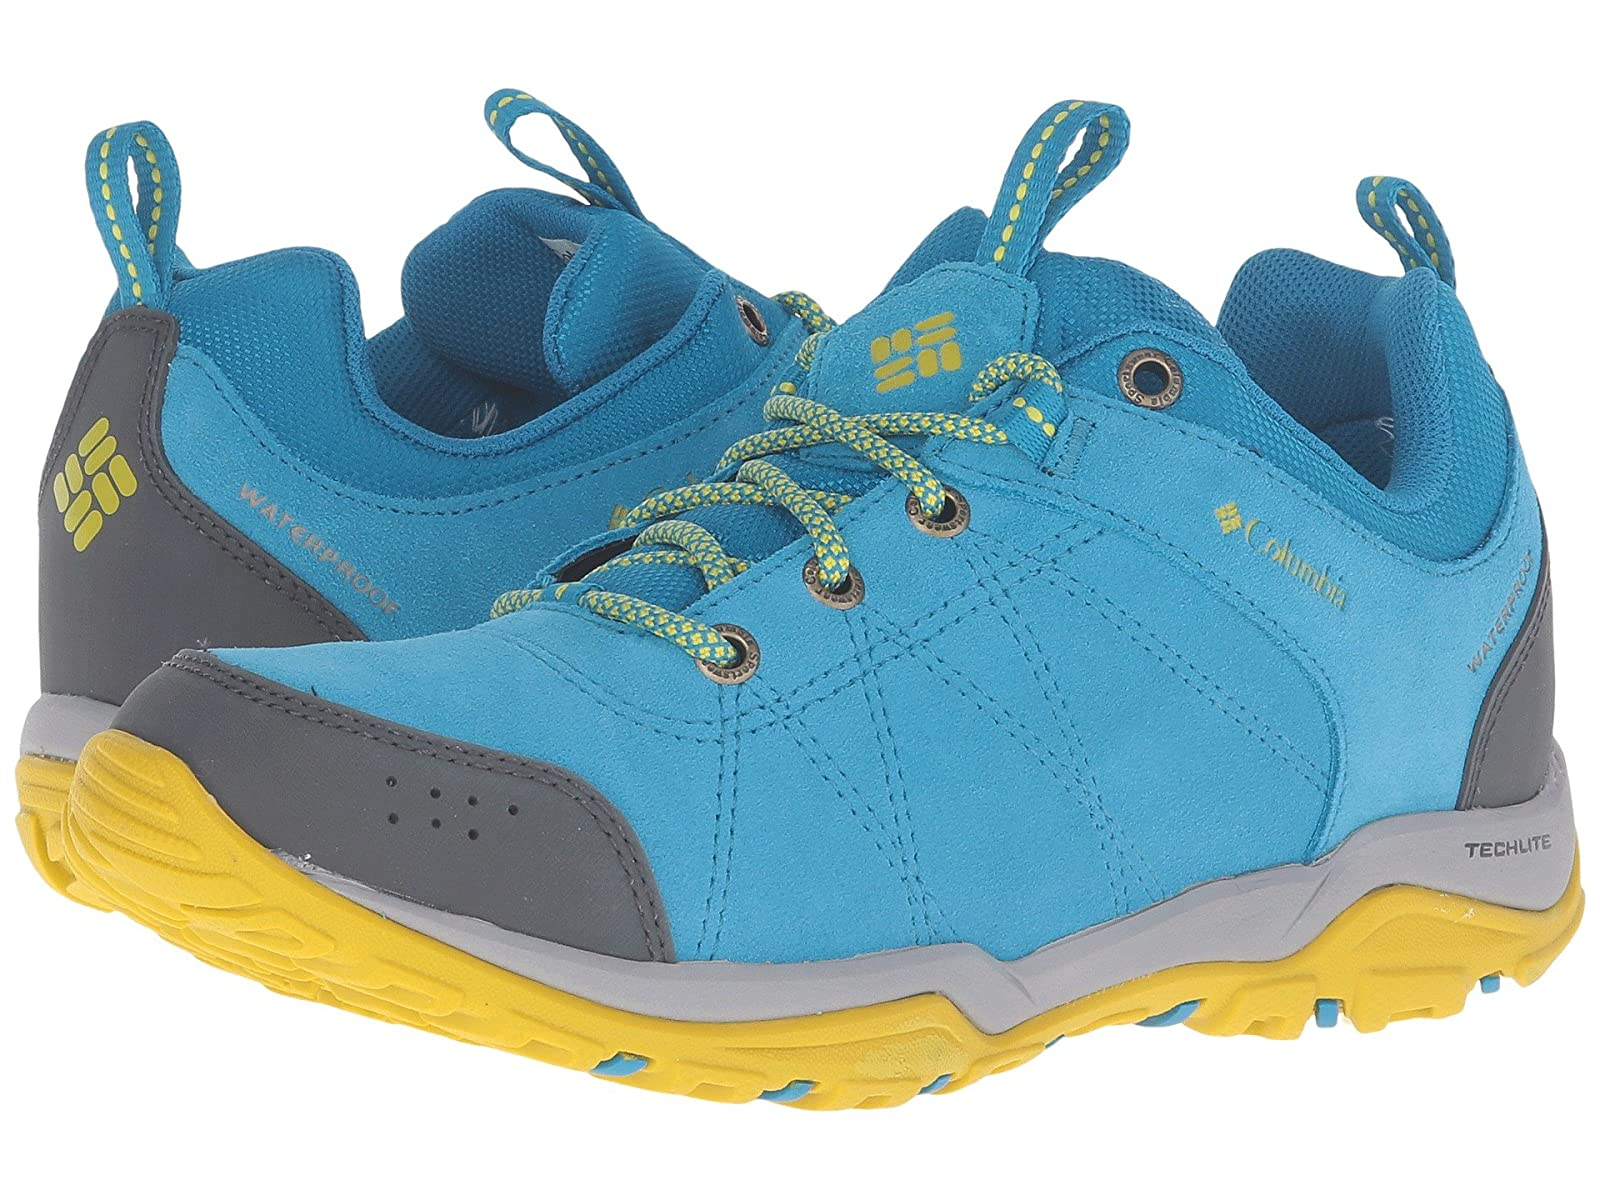 Columbia Fire Venture Low WaterproofCheap and distinctive eye-catching shoes